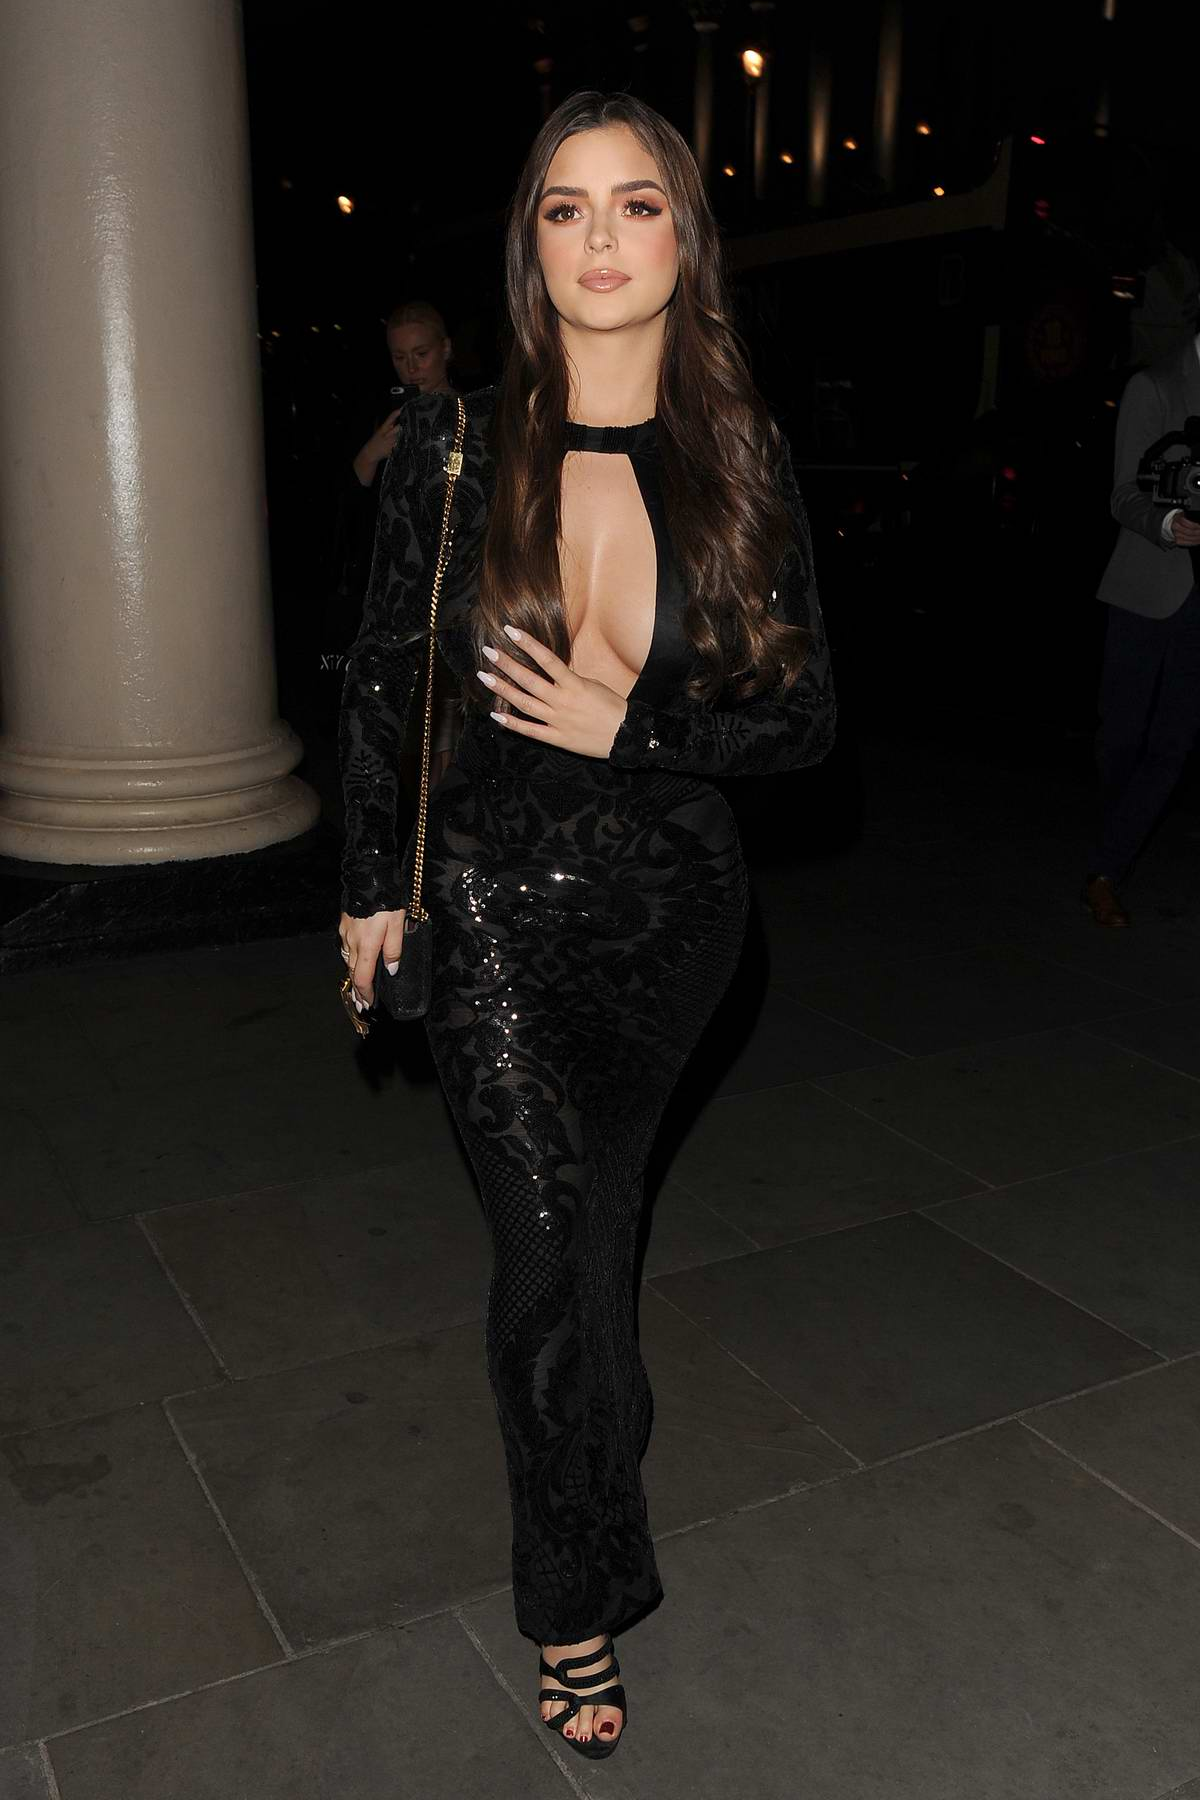 Demi Rose stuns in a plunging black dress during a night out in Mayfair, London, UK